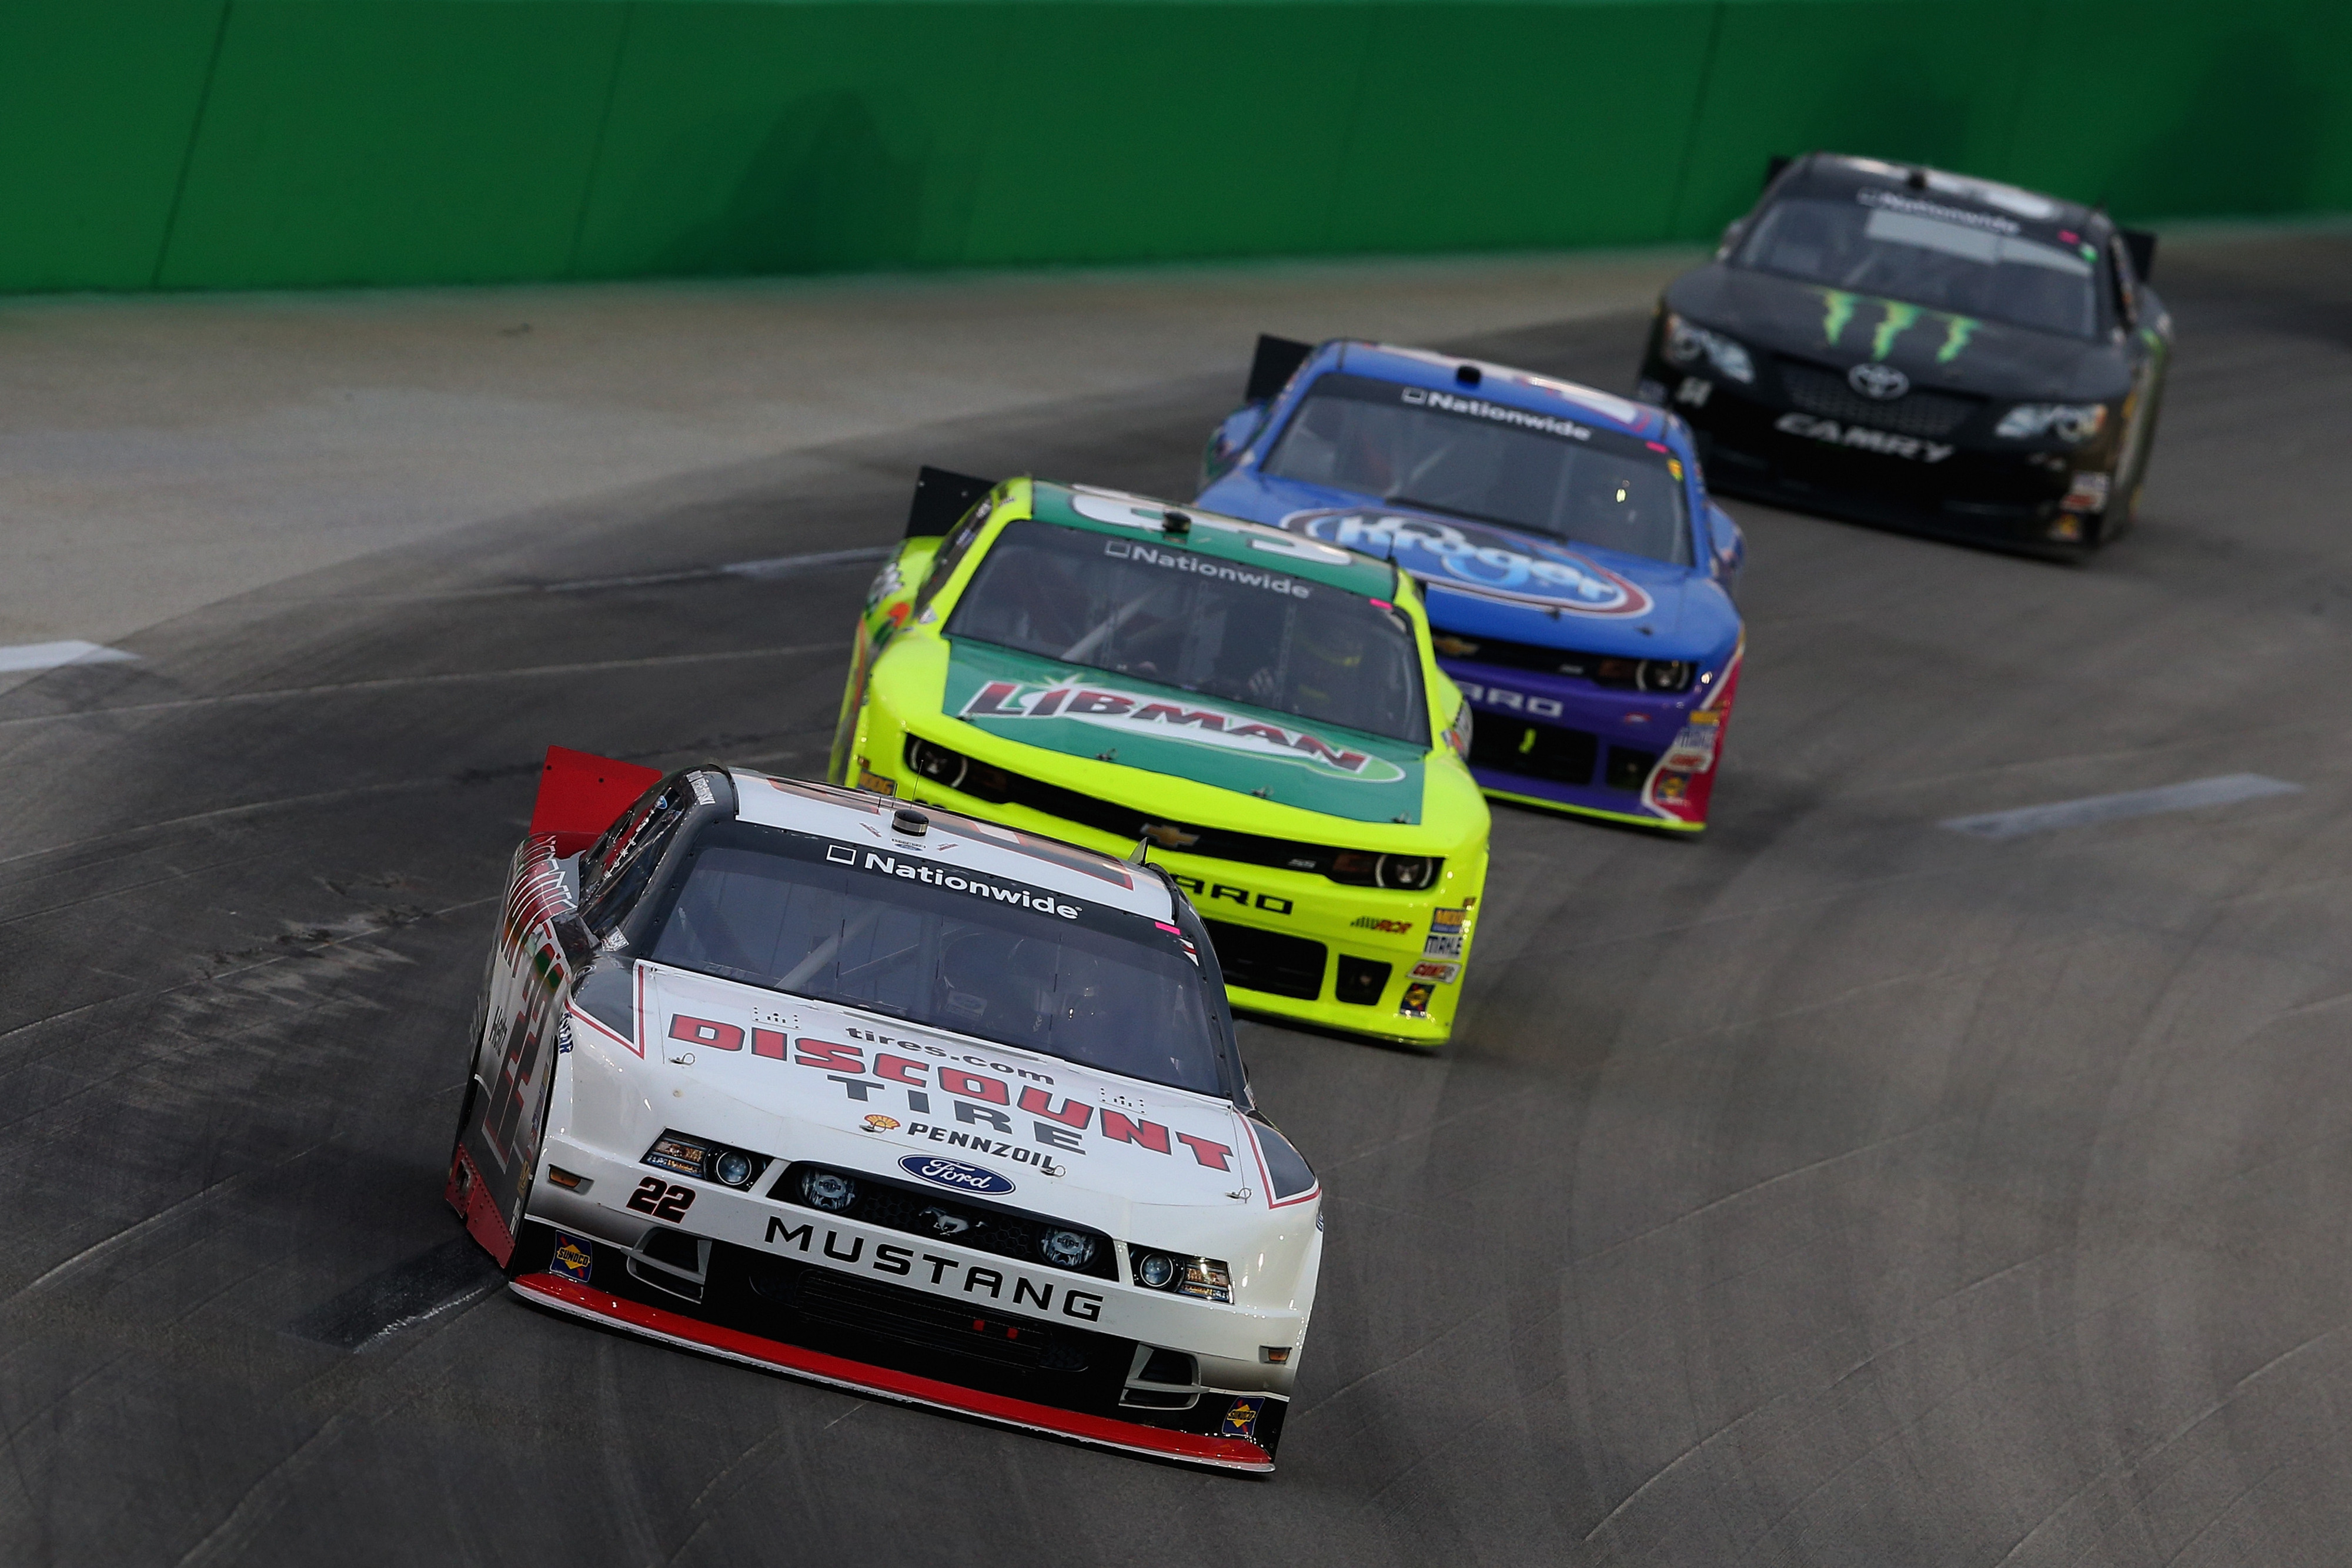 NASCAR at Kentucky Speedway 2014: Lineup, starting grid for Quaker State 400